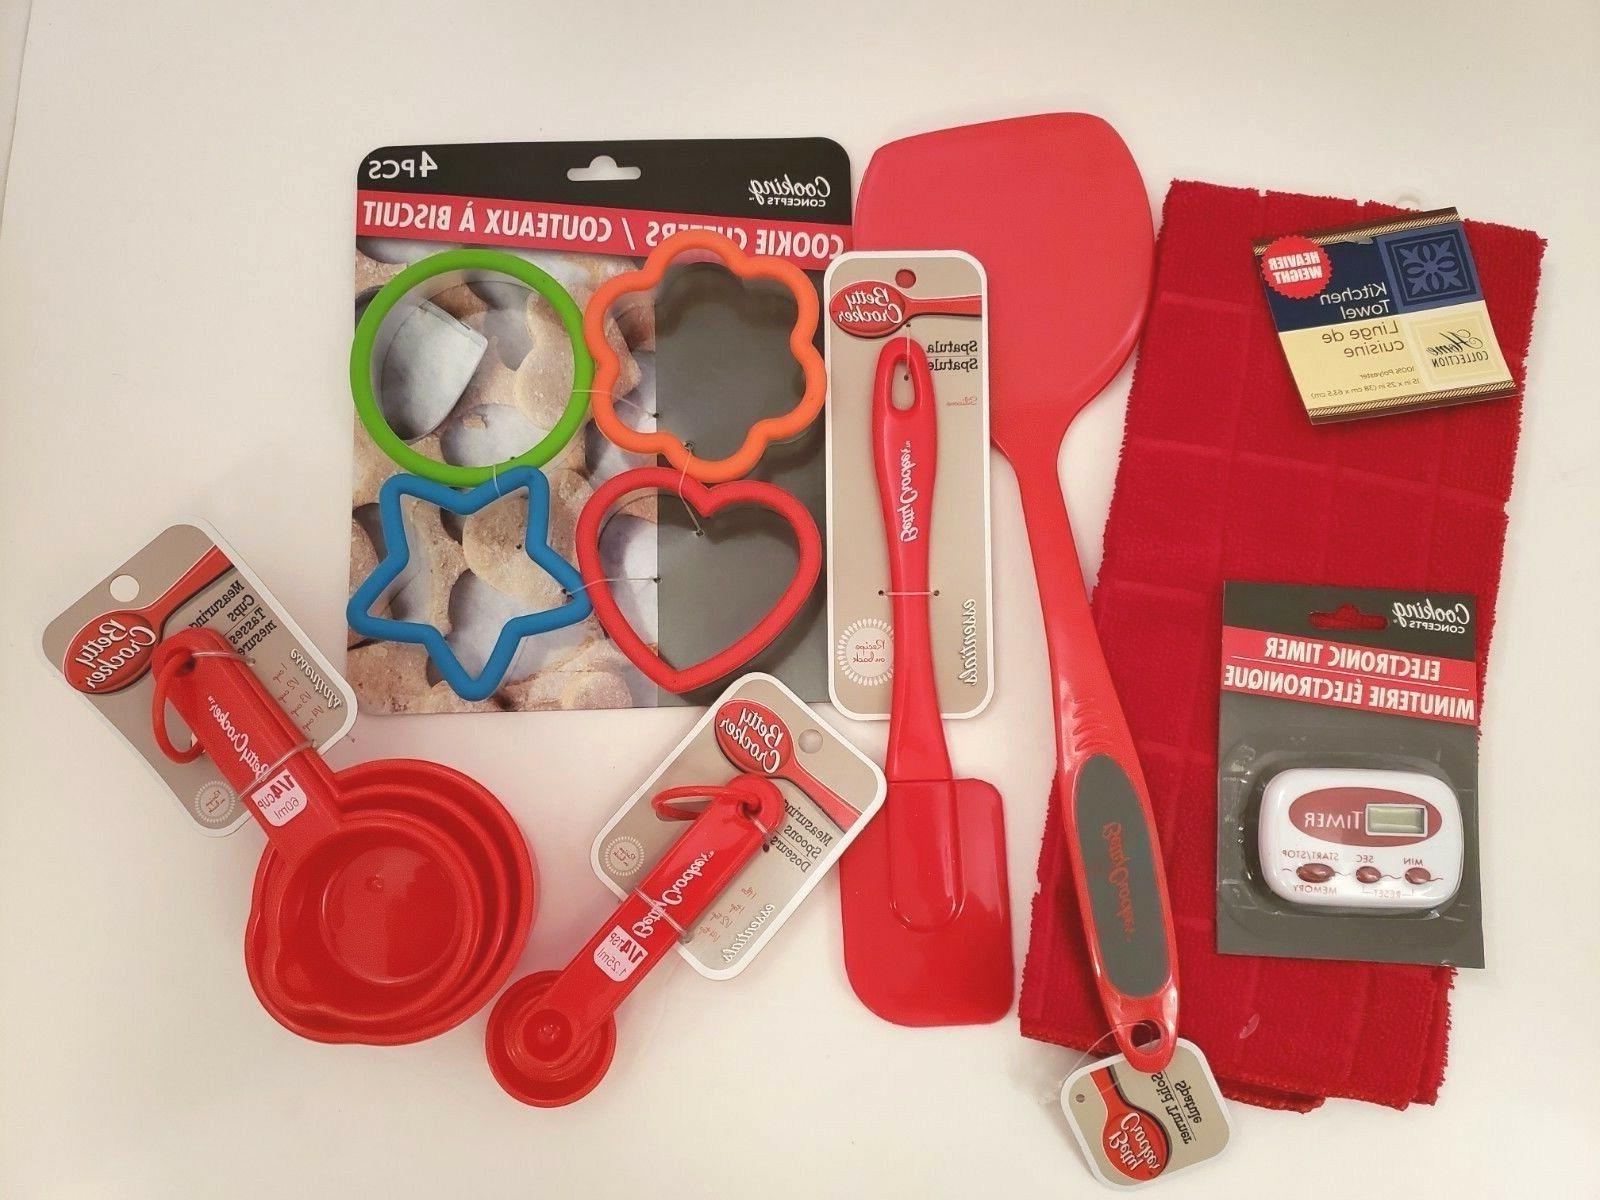 cooking baking kitchen utensils red 7 piece